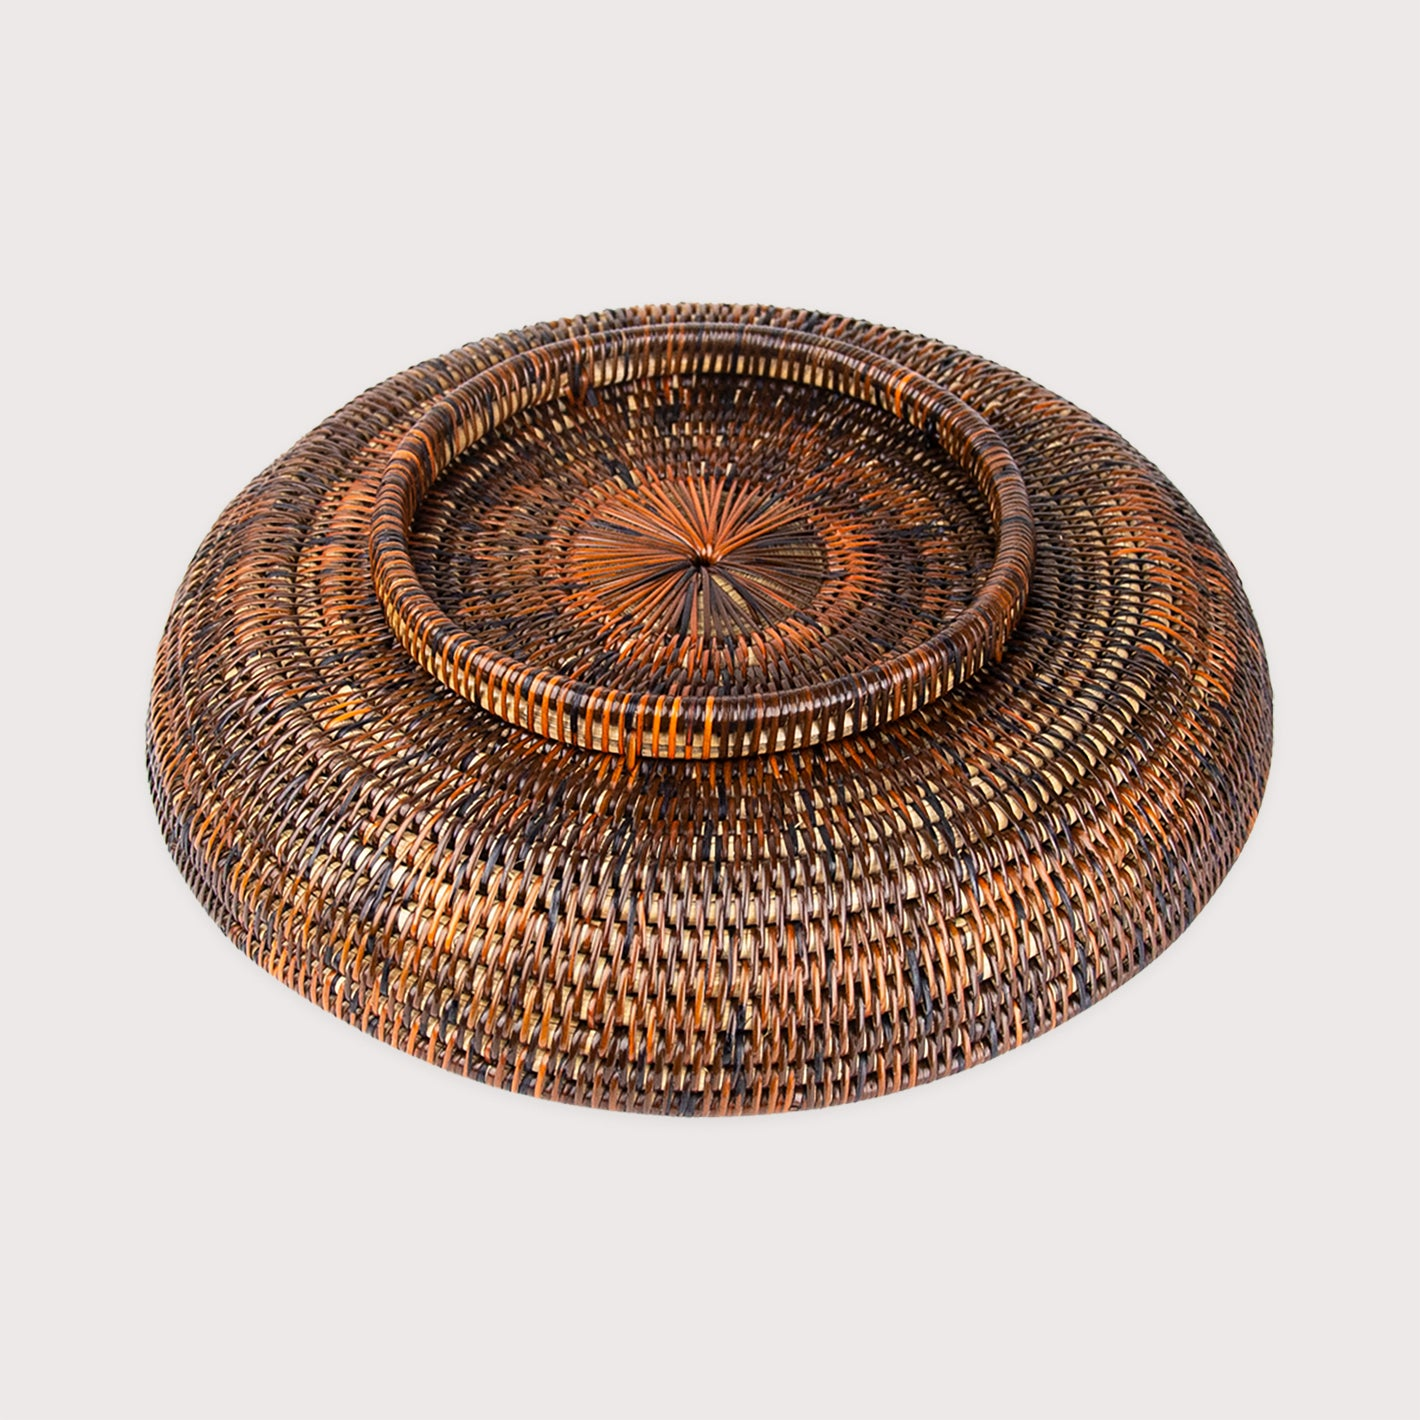 Phala bowl Manava Bowl - White Label Project